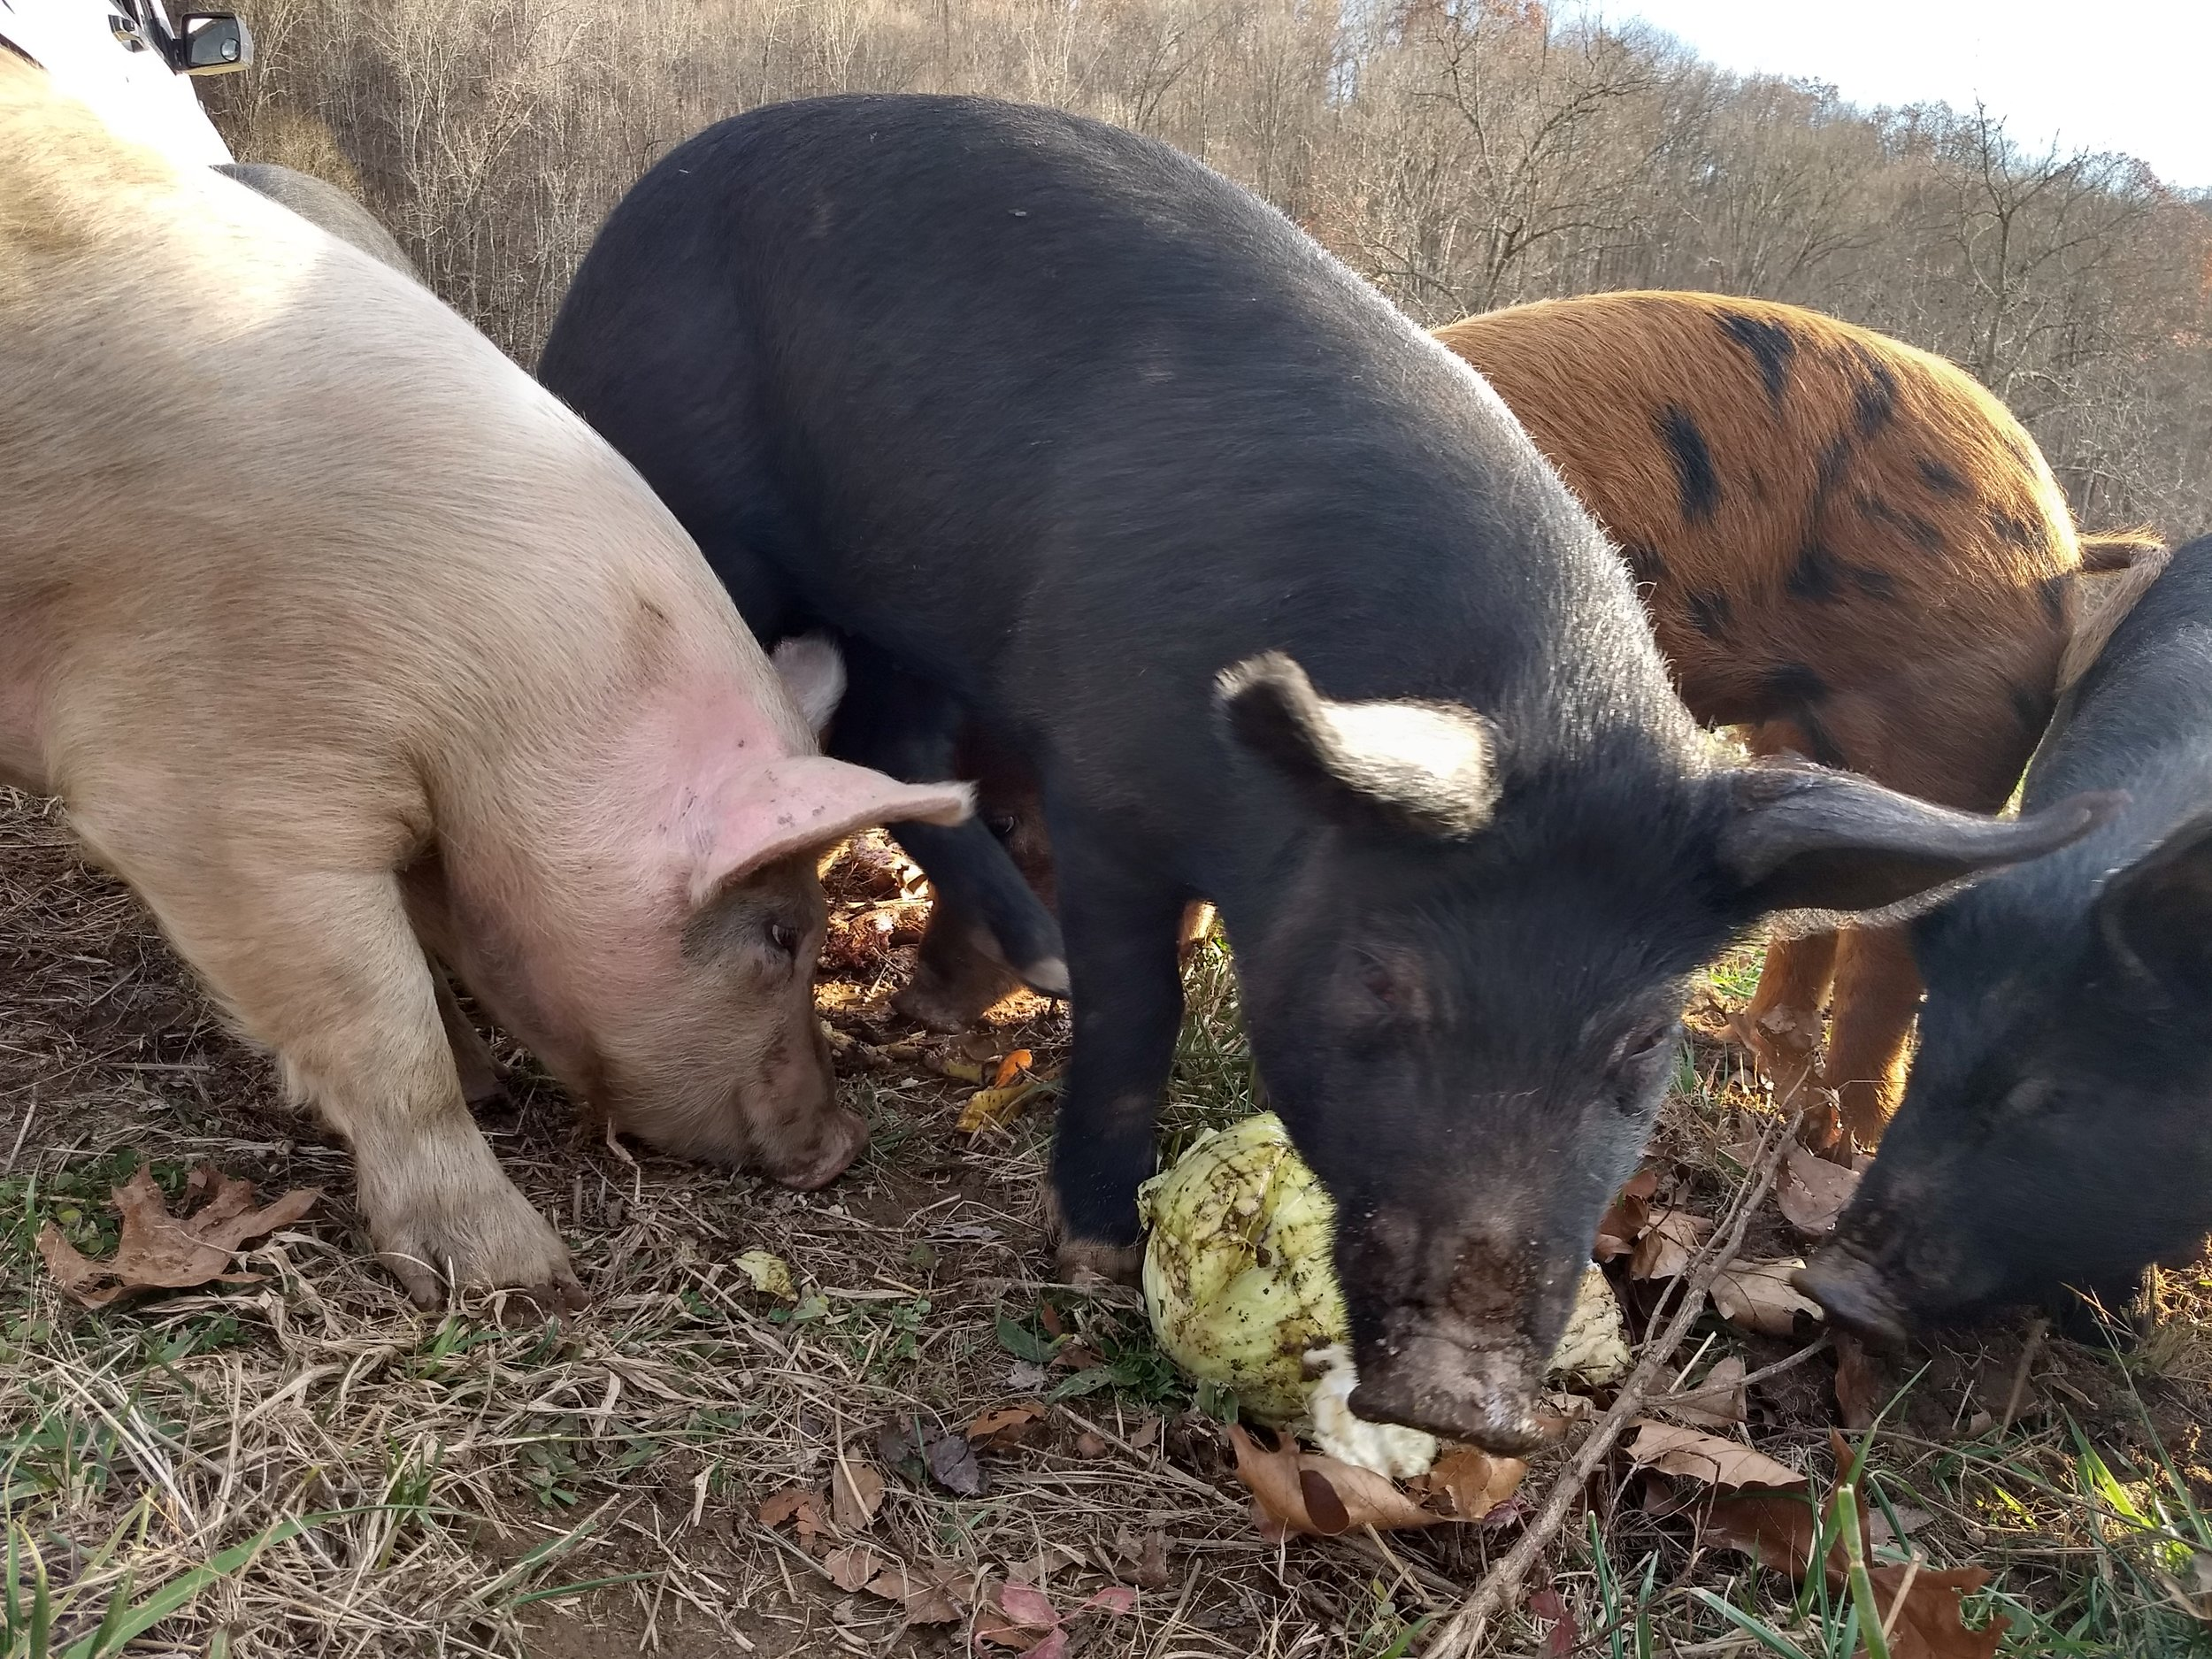 Winter Pork Soon! - Well, December wasn't extremely busy for Ararat Farm. Just a few big things took place to keep the farm busy and allowed Christmas to sneak up on us. We have Winter Pork coming up very soon so please be aware and ready when we open up orders. We will be using the website to do orders so please bear with us as it is a new endeavor for us. We will email you when orders will be open along with an end date.